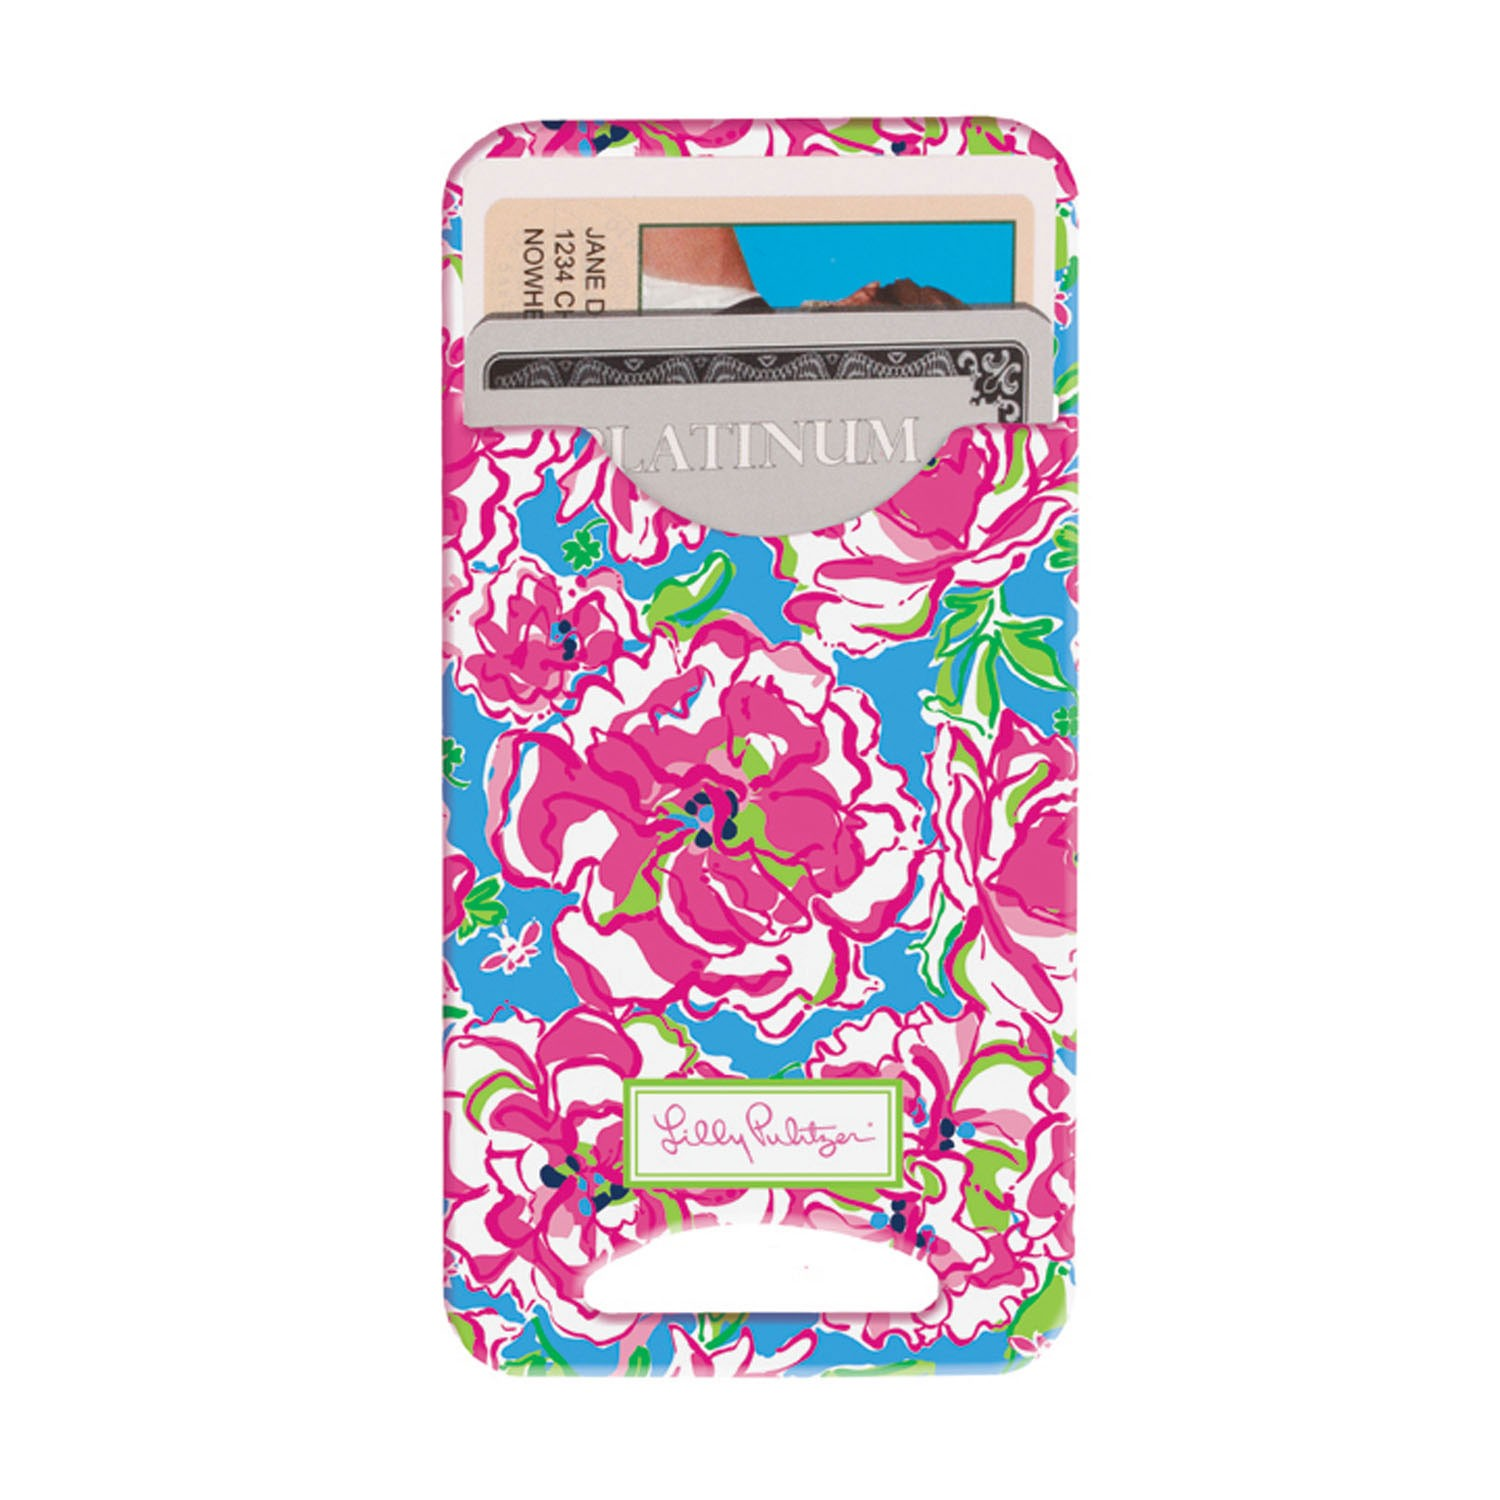 Enchanting Lilly Pulitzer Phone Case for Phone Accessories Ideas: Lilly Pulitzer Phone Case | Lily Pulitzer Case | Lilly Pulitzer Elephant